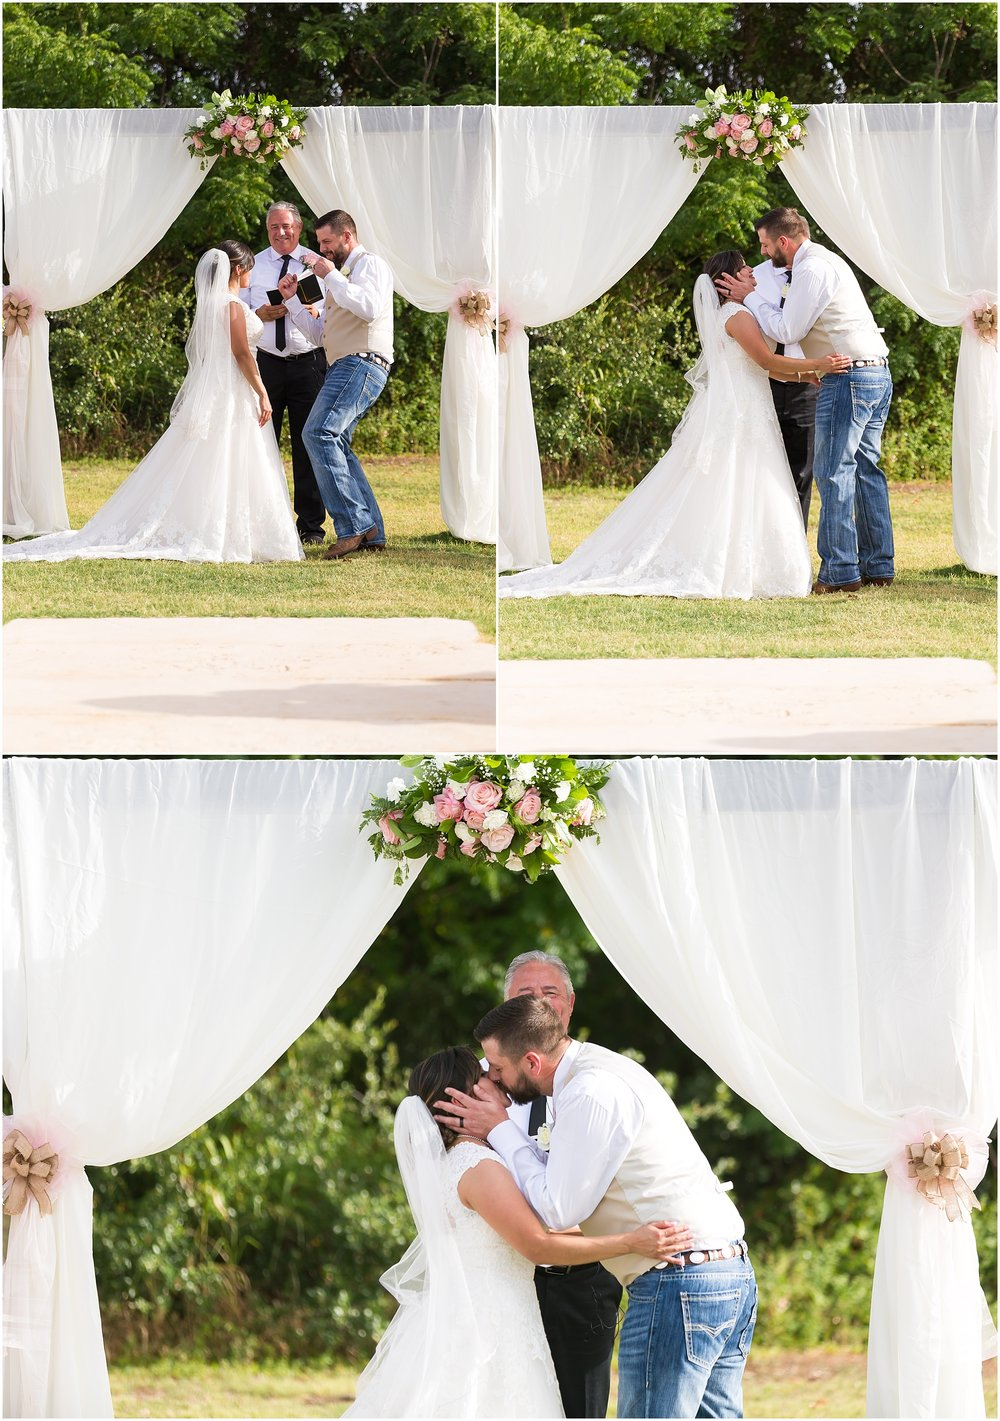 Groom kisses his bride at the end of their wedding ceremony in Belton, Texas - Jason & Melaina Photography - www.jasonandmelaina.com